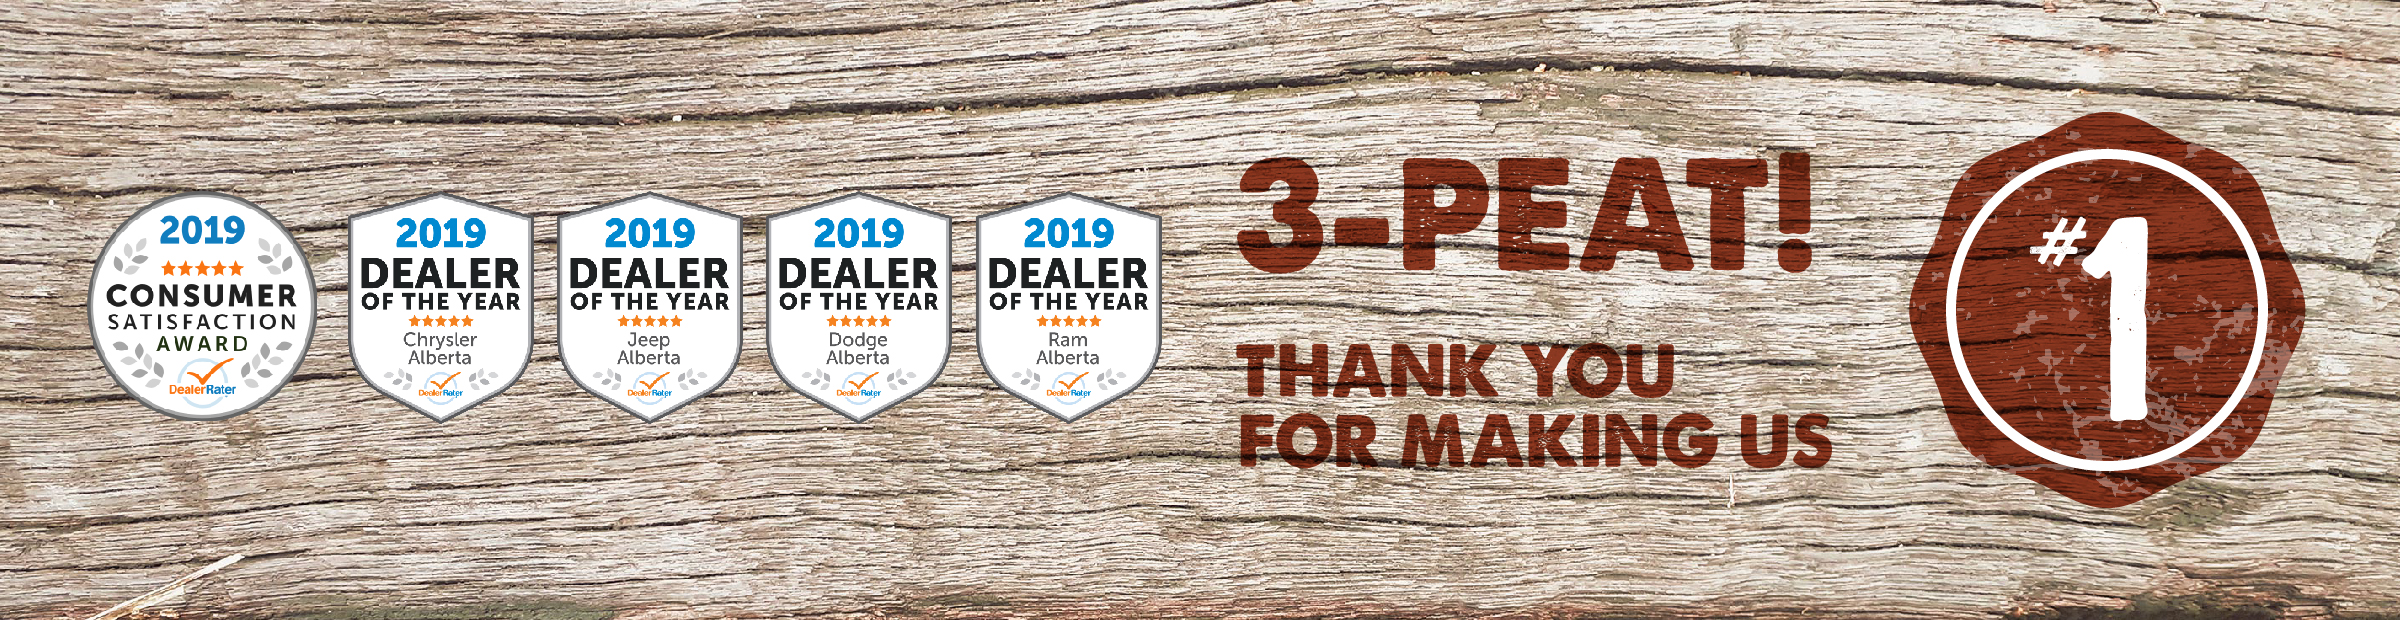 2019 DEALER OF THE YEAR & 2019 CONSUMER SATISFACTION AWARD WINNER